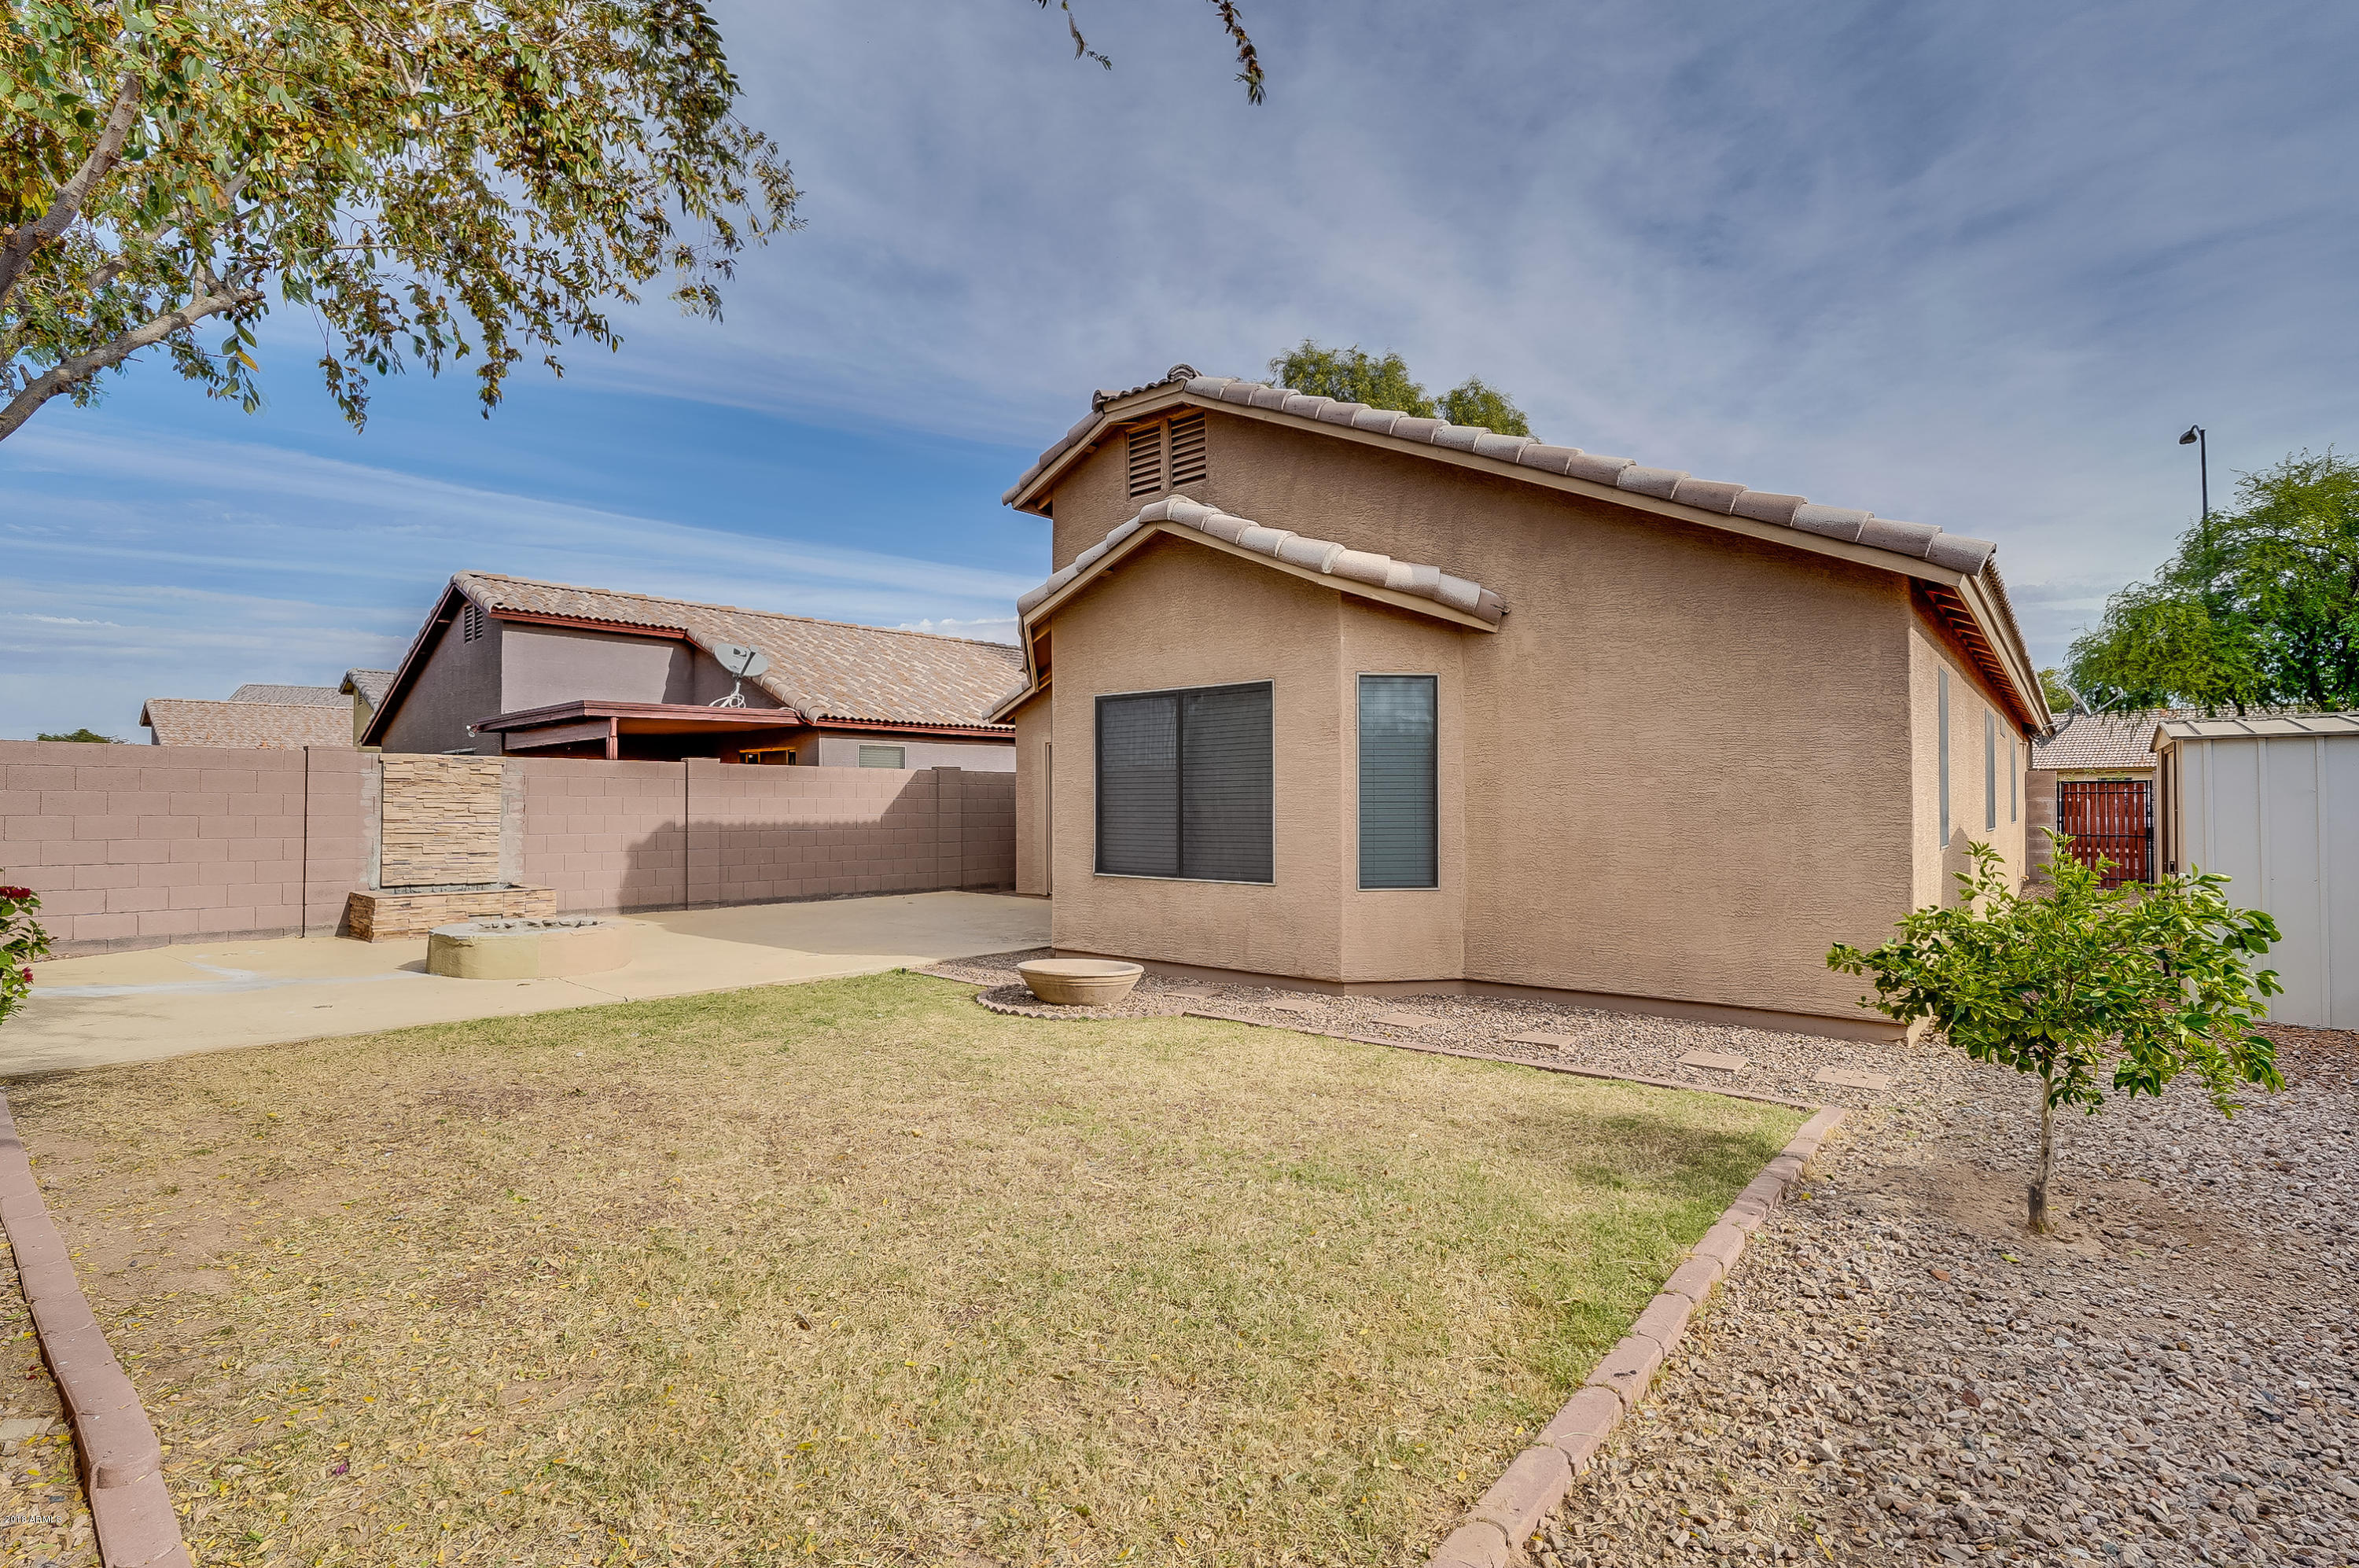 MLS 5849730 448 S CHATSWORTH --, Mesa, AZ 85208 Mesa AZ Parkwood Ranch